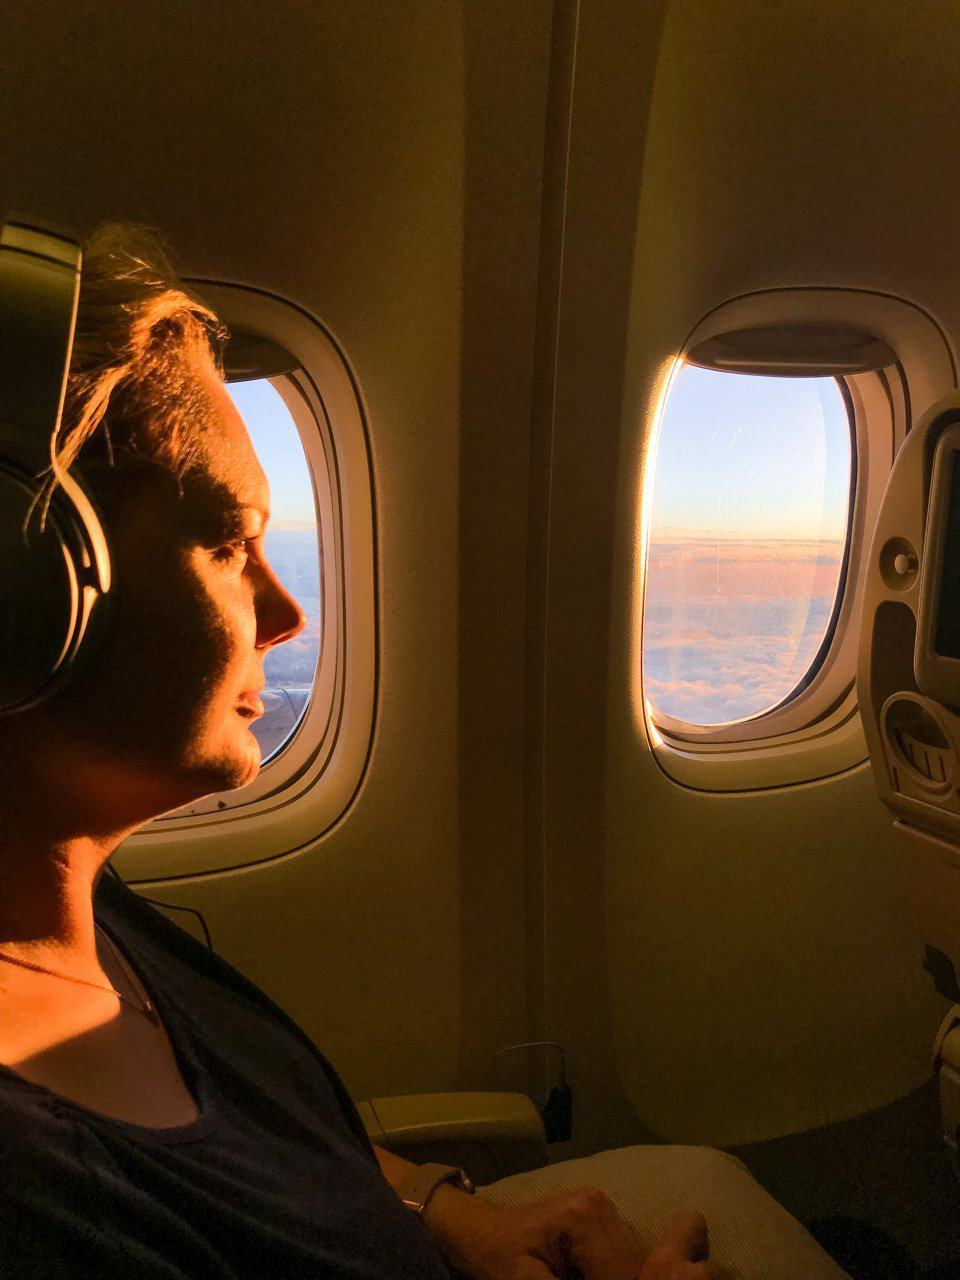 Woman on airplane at window seat with headphones